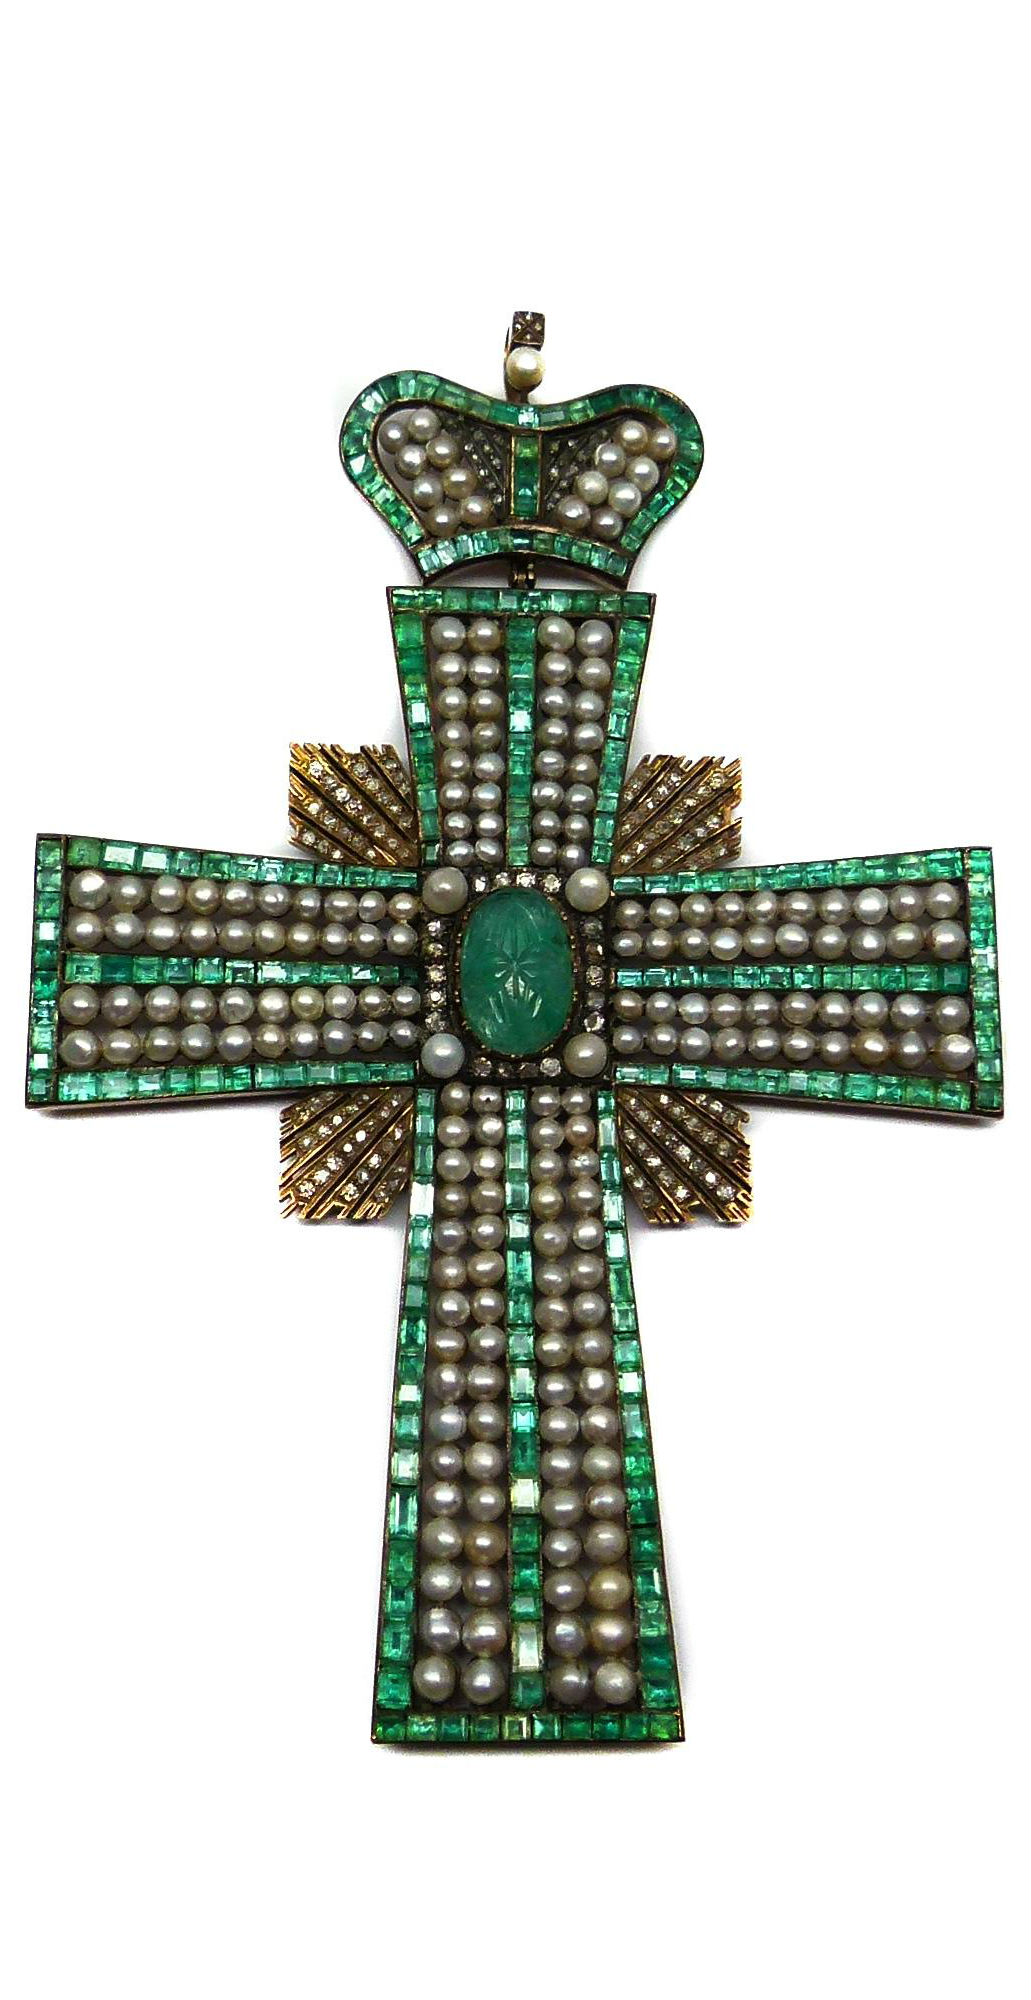 {Daily Jewel} Large 19th century emerald pearl and diamond cross pendant c.1850